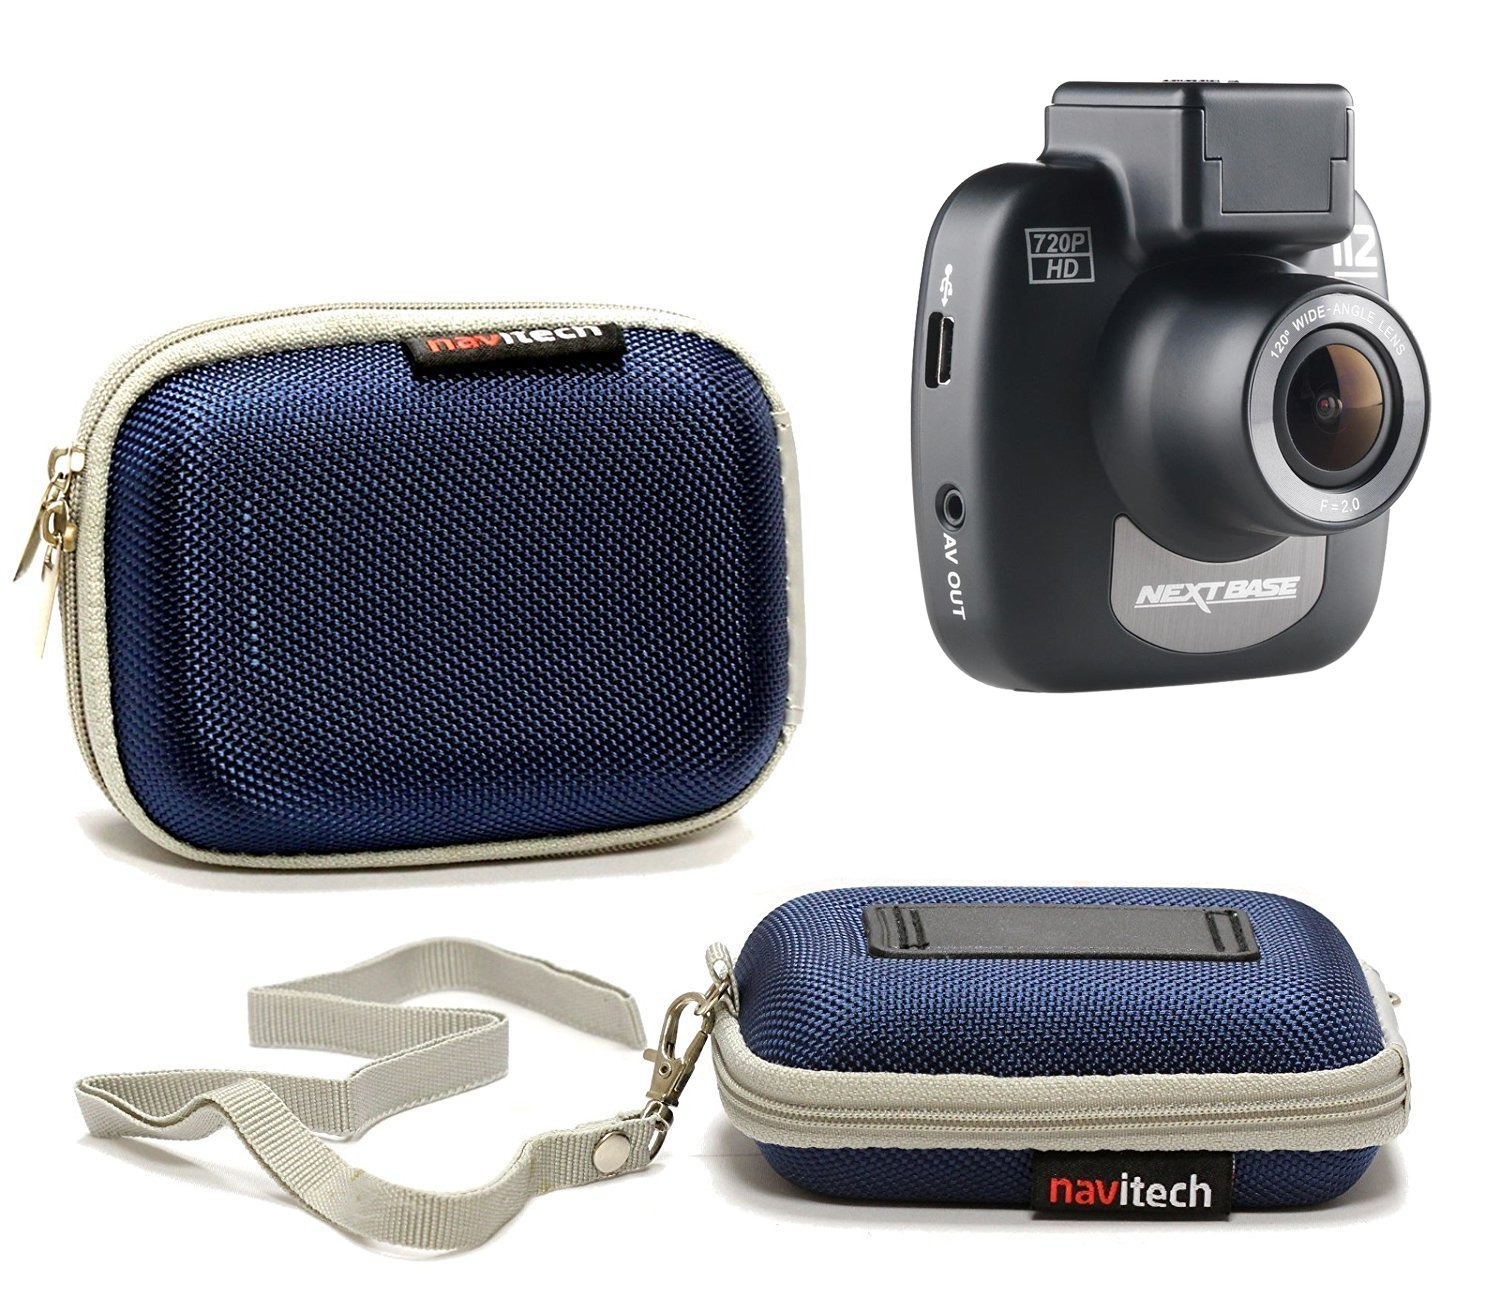 Navitech 50-in-1 Action Camera Accessories Combo KIt with EVA Case Compatible with The Eken H7 Pro Action Camera